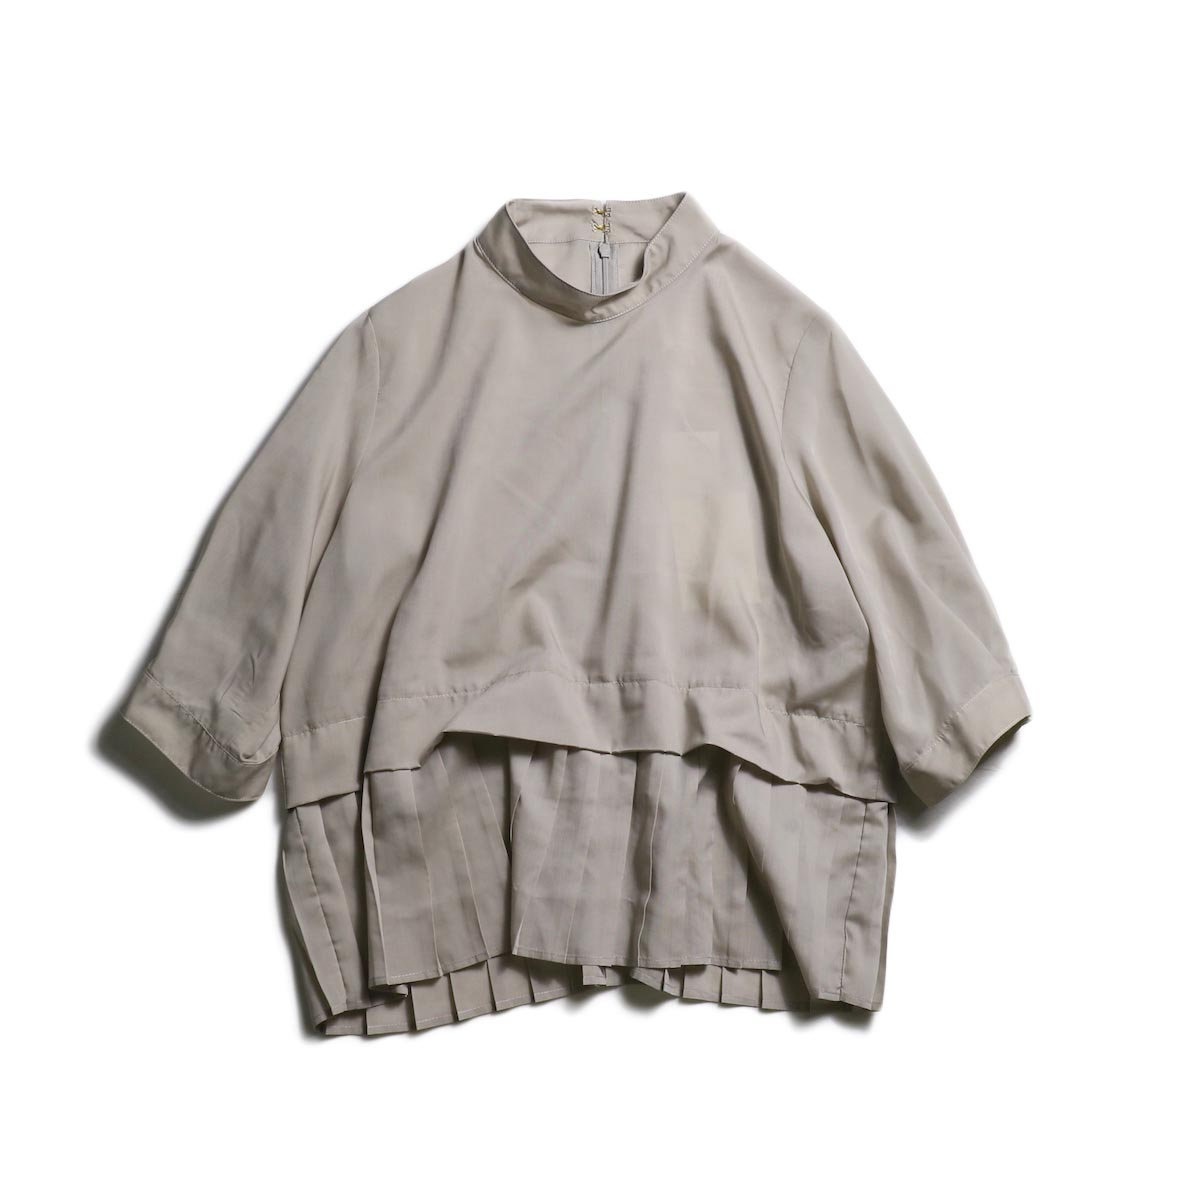 WHYTO. / Stand Collar Pleats Blouse (Grayge)